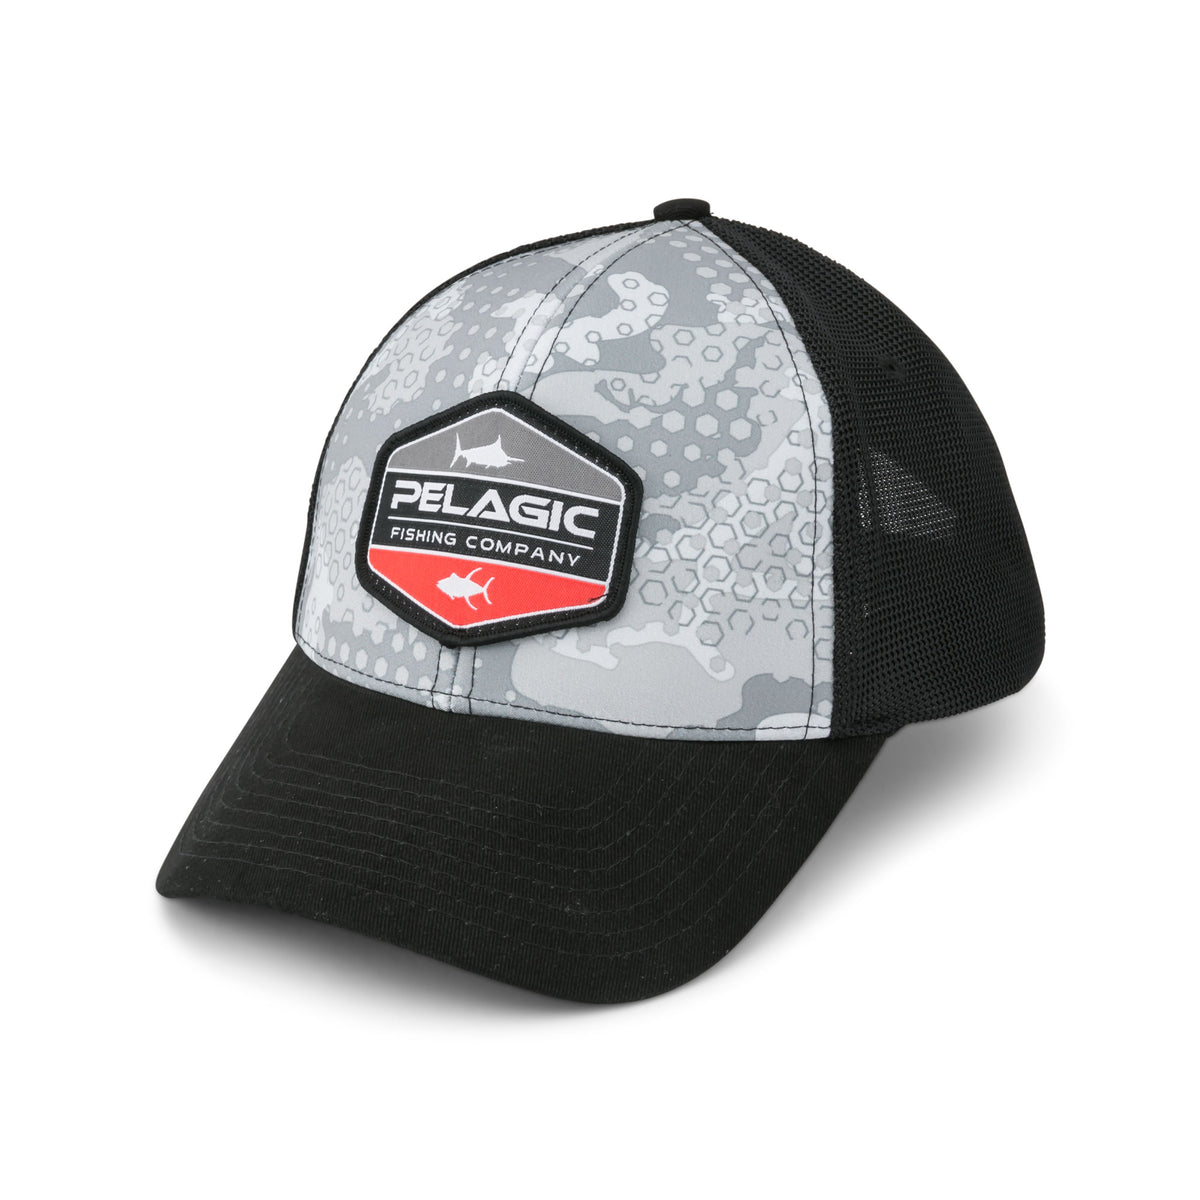 Offshore Print Fishing Hat - Duo Big Image - 1